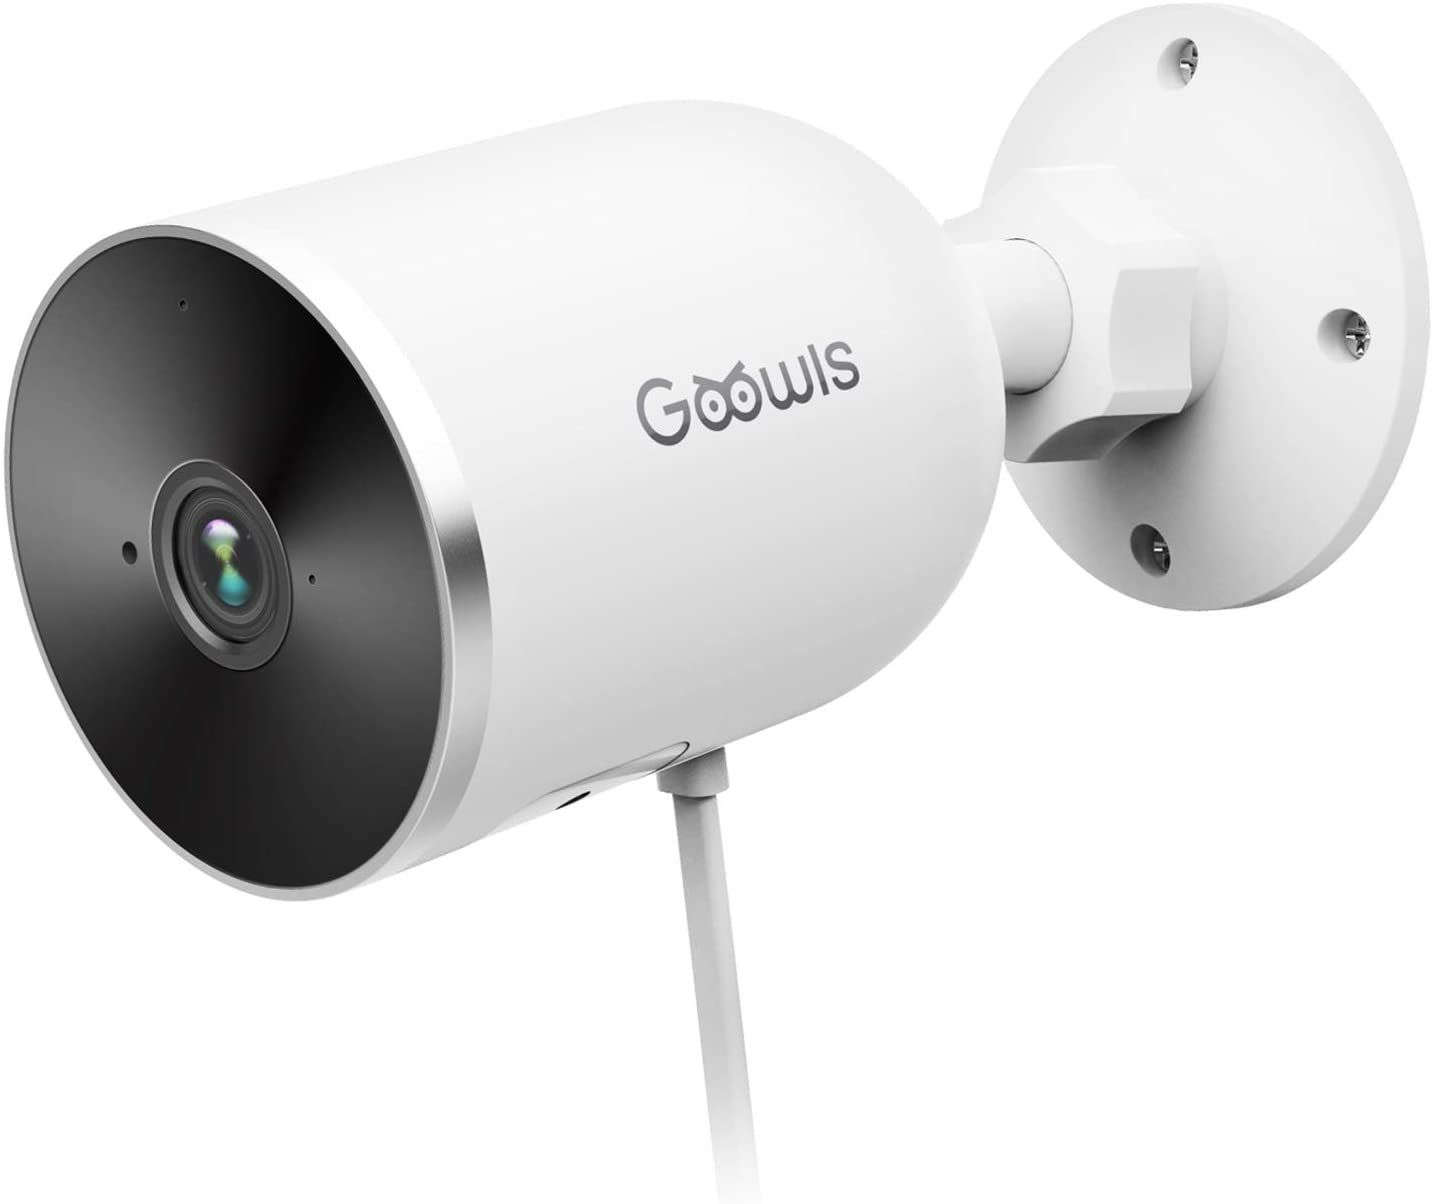 Goowls 1080p Wifi Camera Home Security Surveillance 29 99 Free Shipping Sold By Amazon Com Wifi Camera Surveillance Camera Security Surveillance